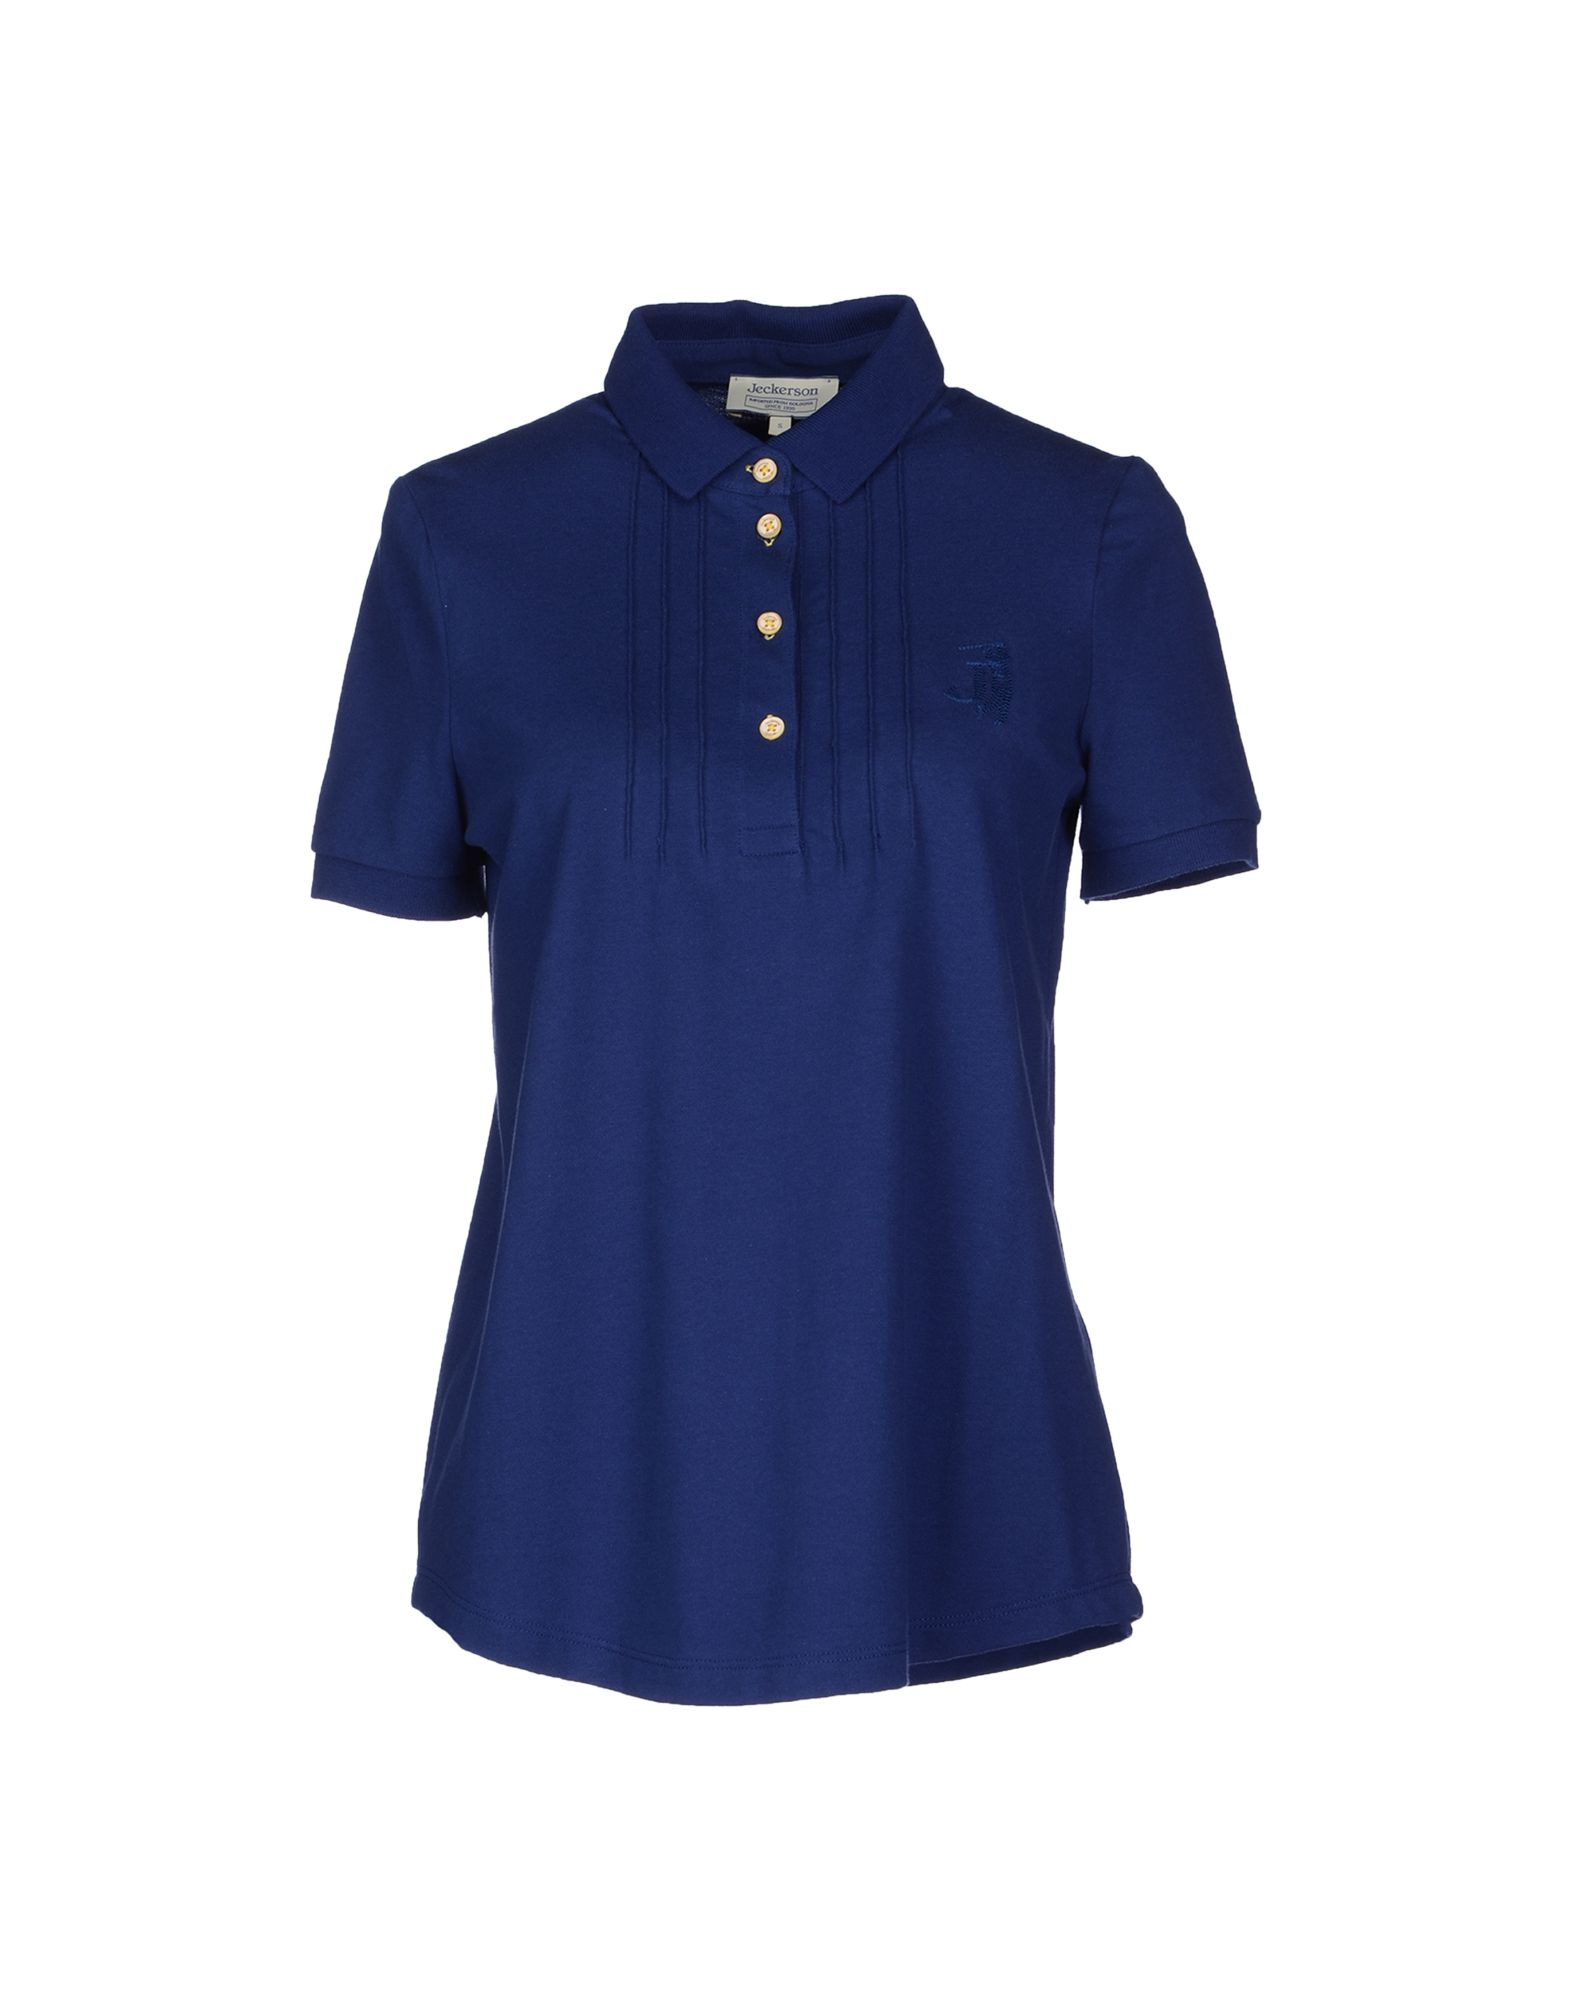 You don't need a pony for these cool polo shirts. From the beach to the office, our casual yet stylish Dark Blue Men's Polo Shirts make you the talk of the town. We have mens polos and womens polos in a variety of colors and adult sizes, giving you the ever-appealing look and feel you're after. With.